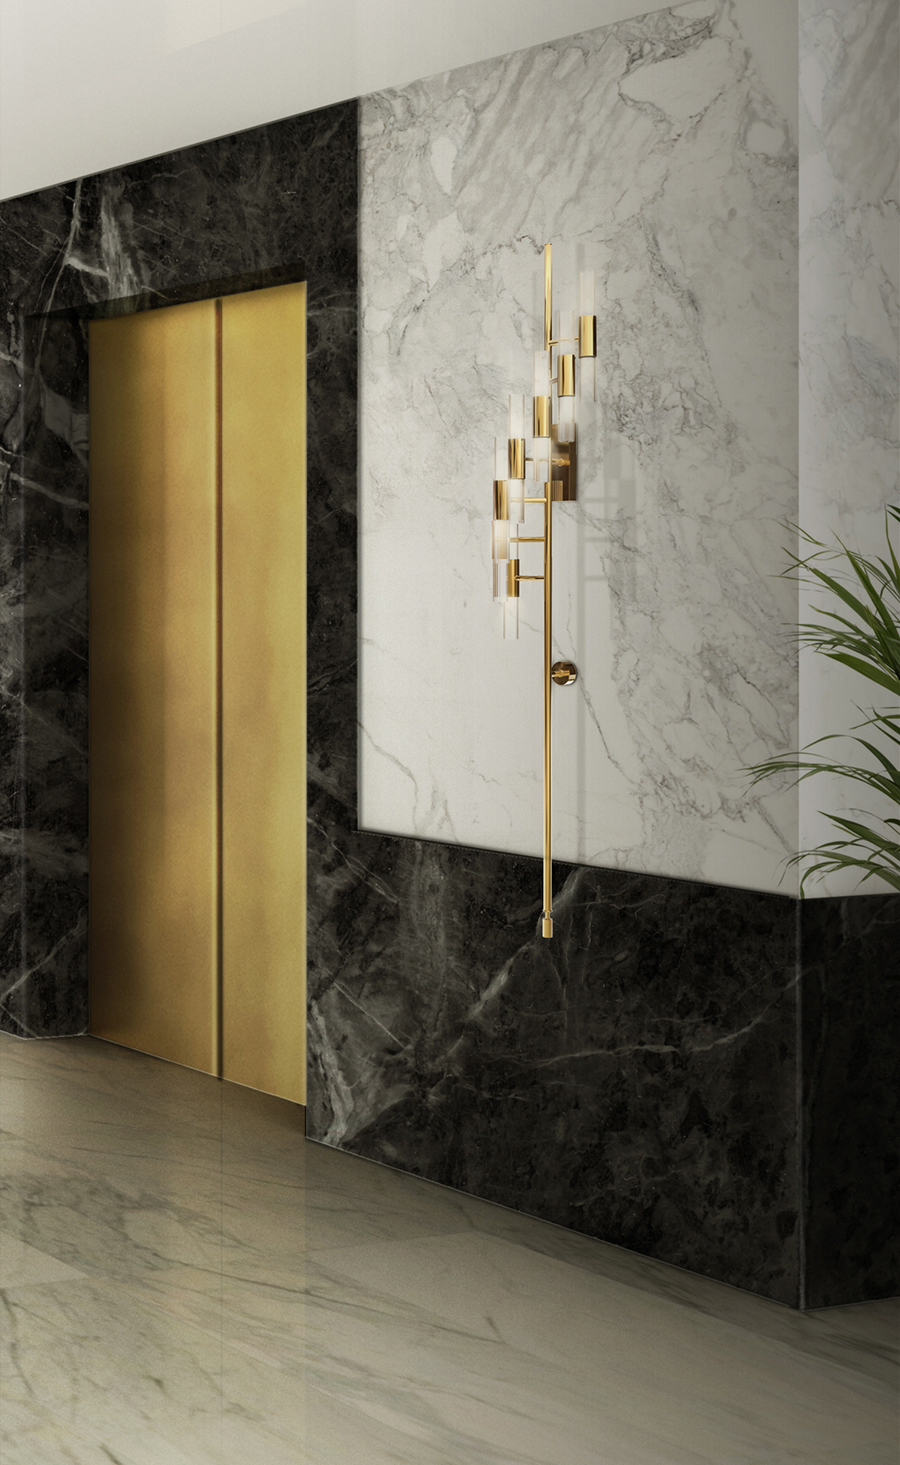 Product Of The Week: Waterfall Torch Wall